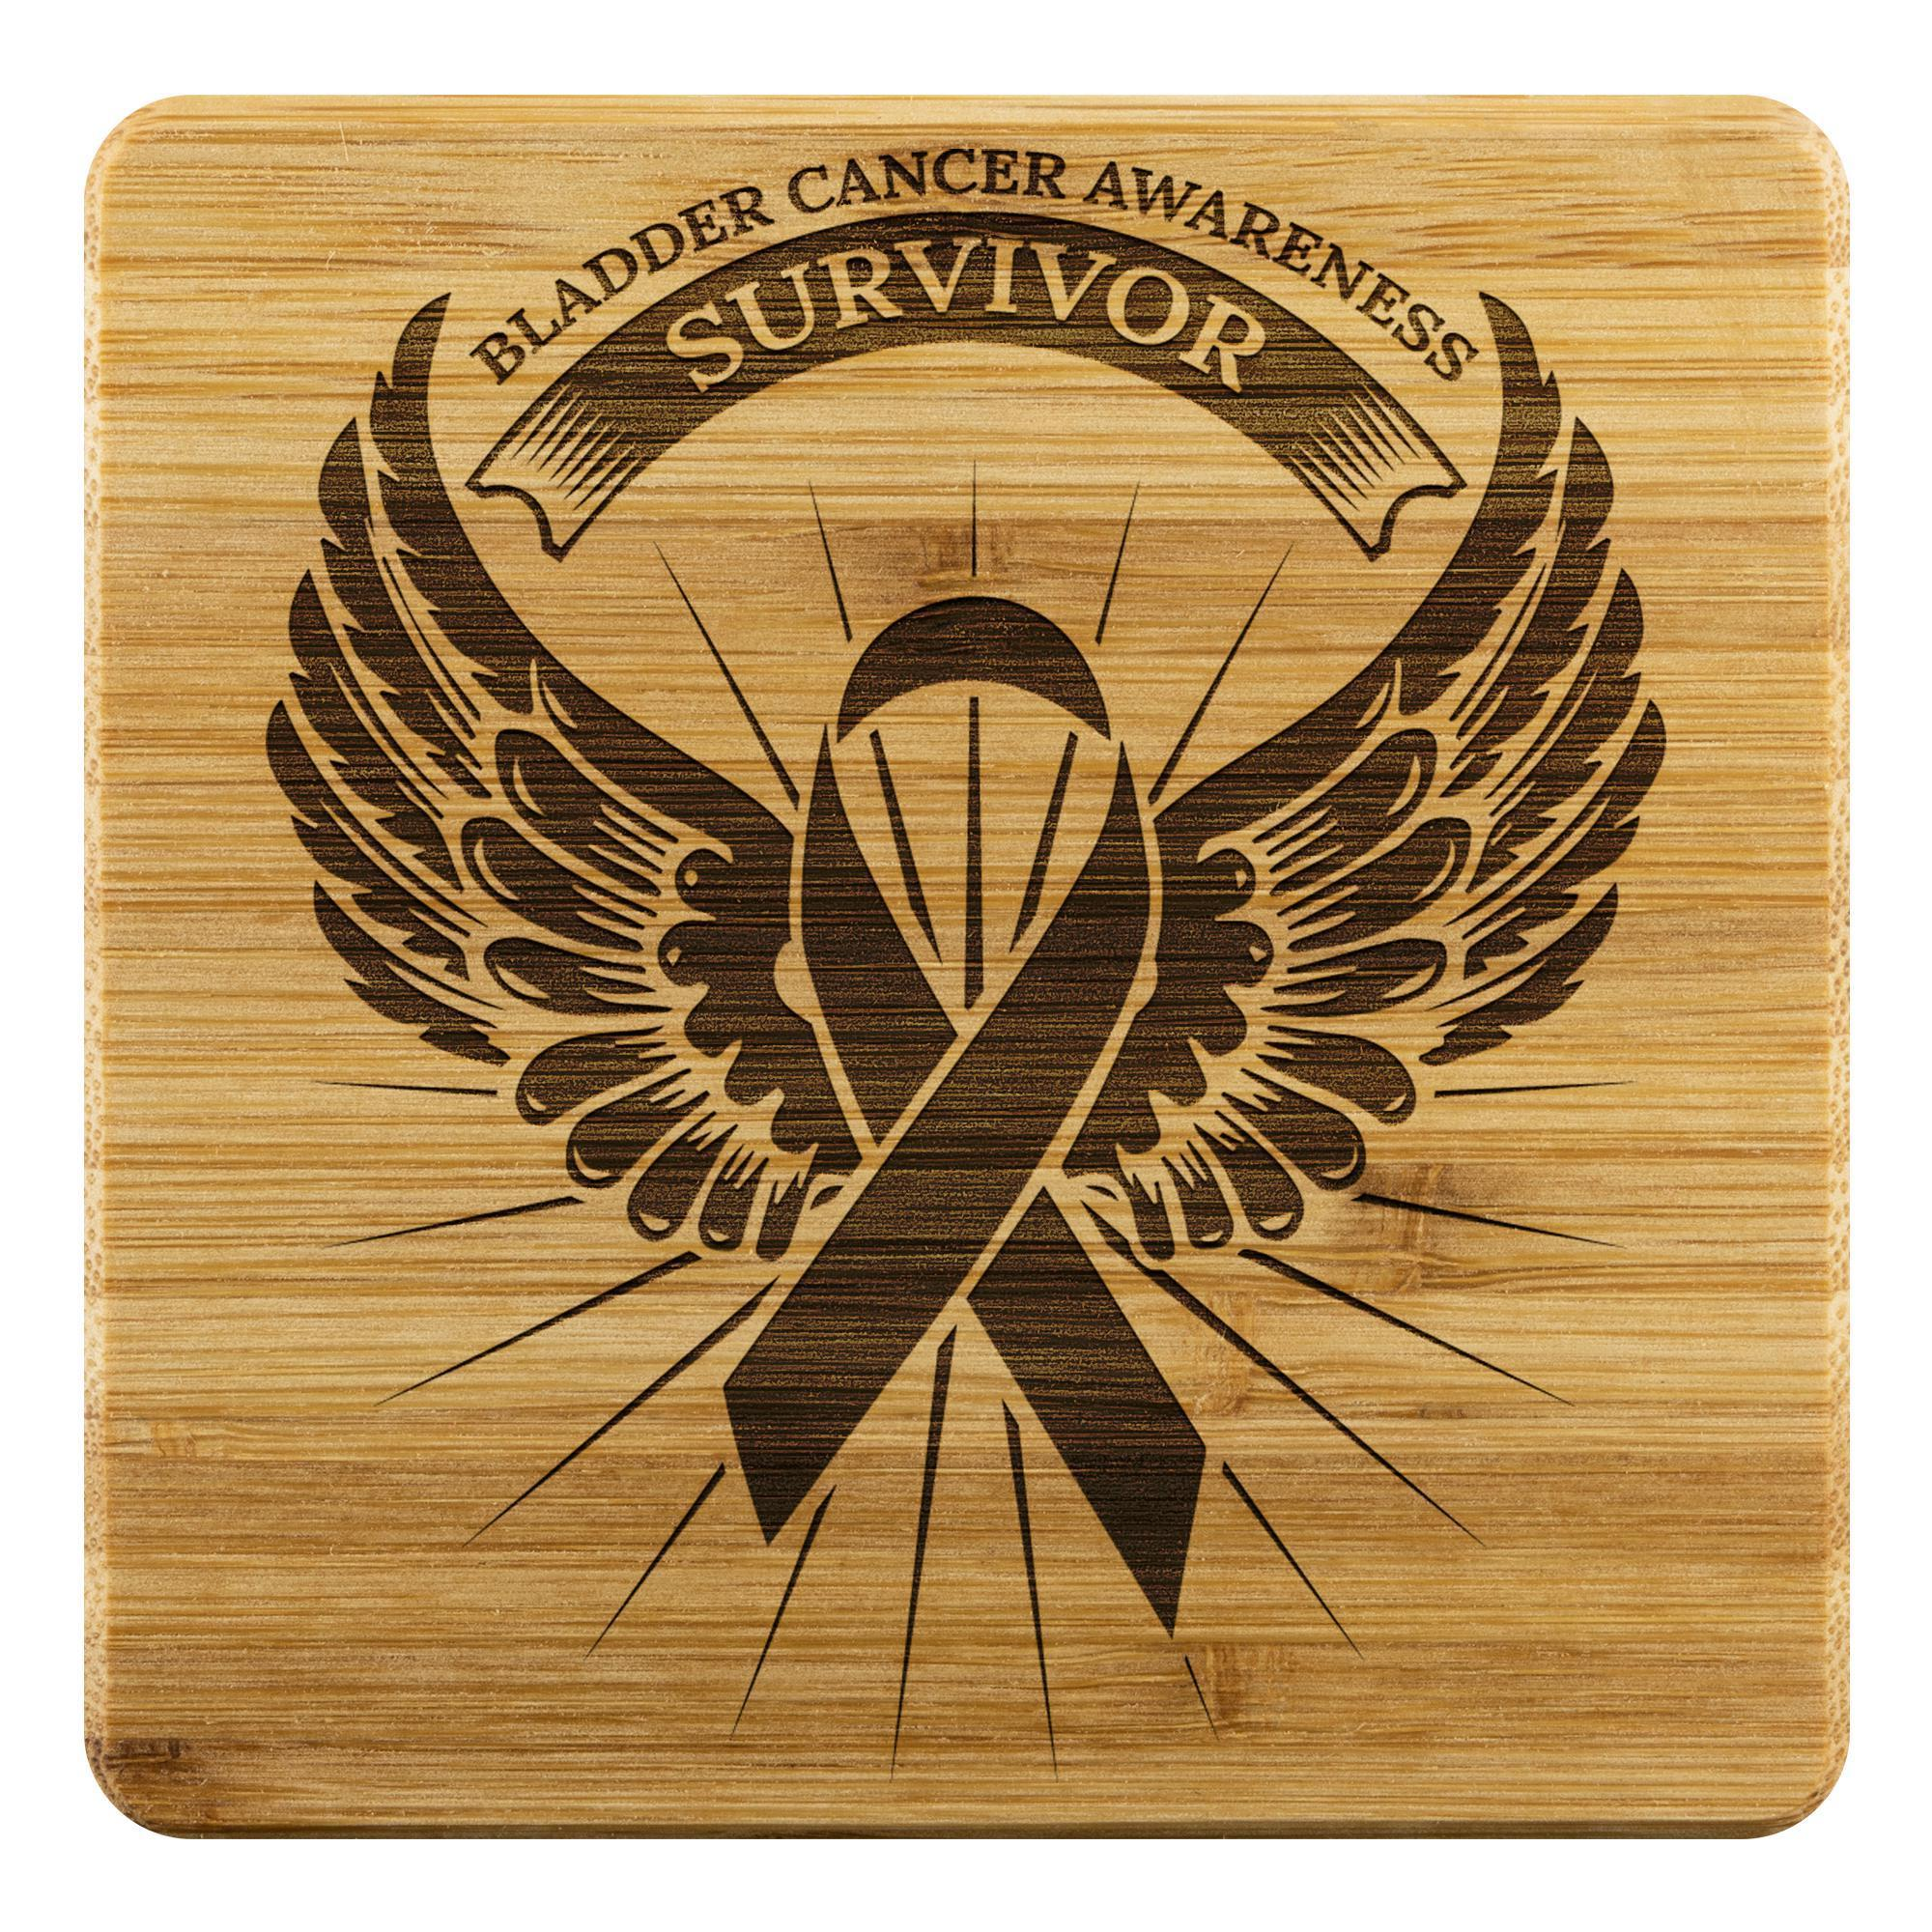 Bladder Cancer Survivor Angel Wing Drink Coasters Set Gift Ideas-Coasters-Bamboo Coaster - 4pc-JoyHip.Com